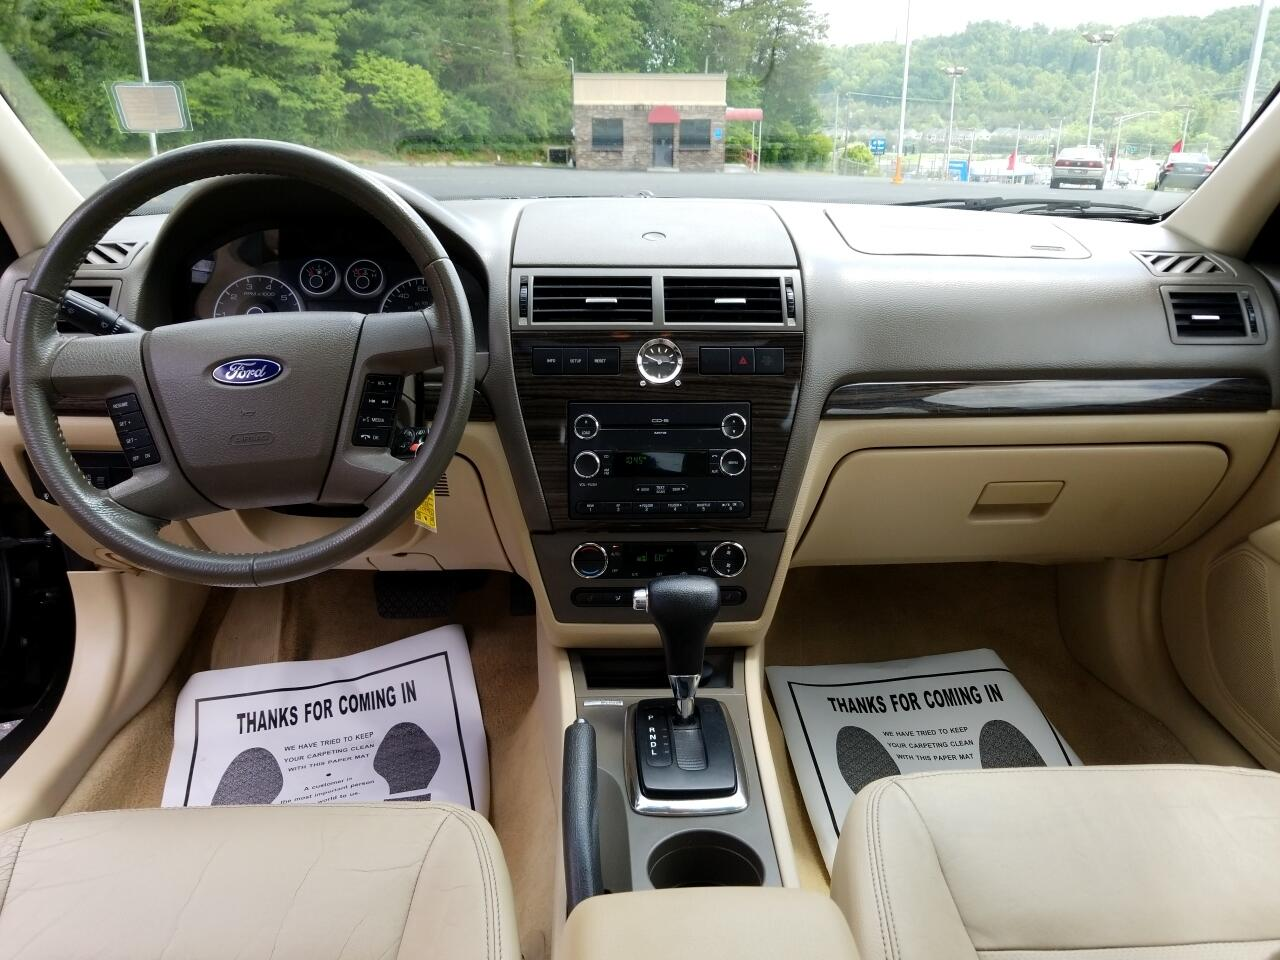 2008 Ford Fusion 4dr Sdn I4 SEL